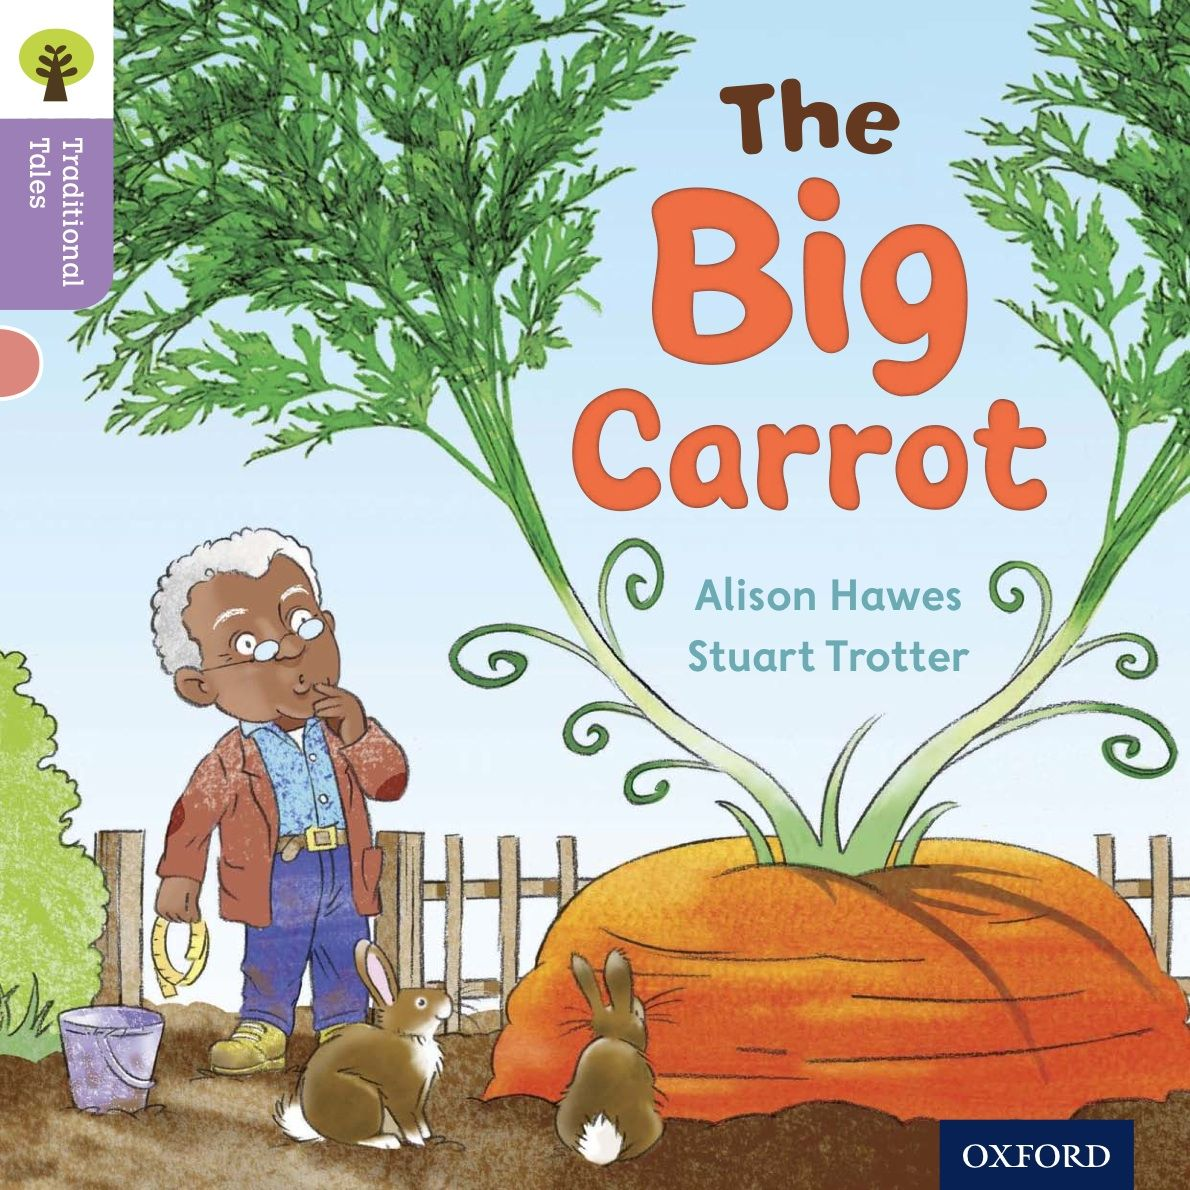 The Big Carrot (With images) | Oxford reading tree, The big carrot ...